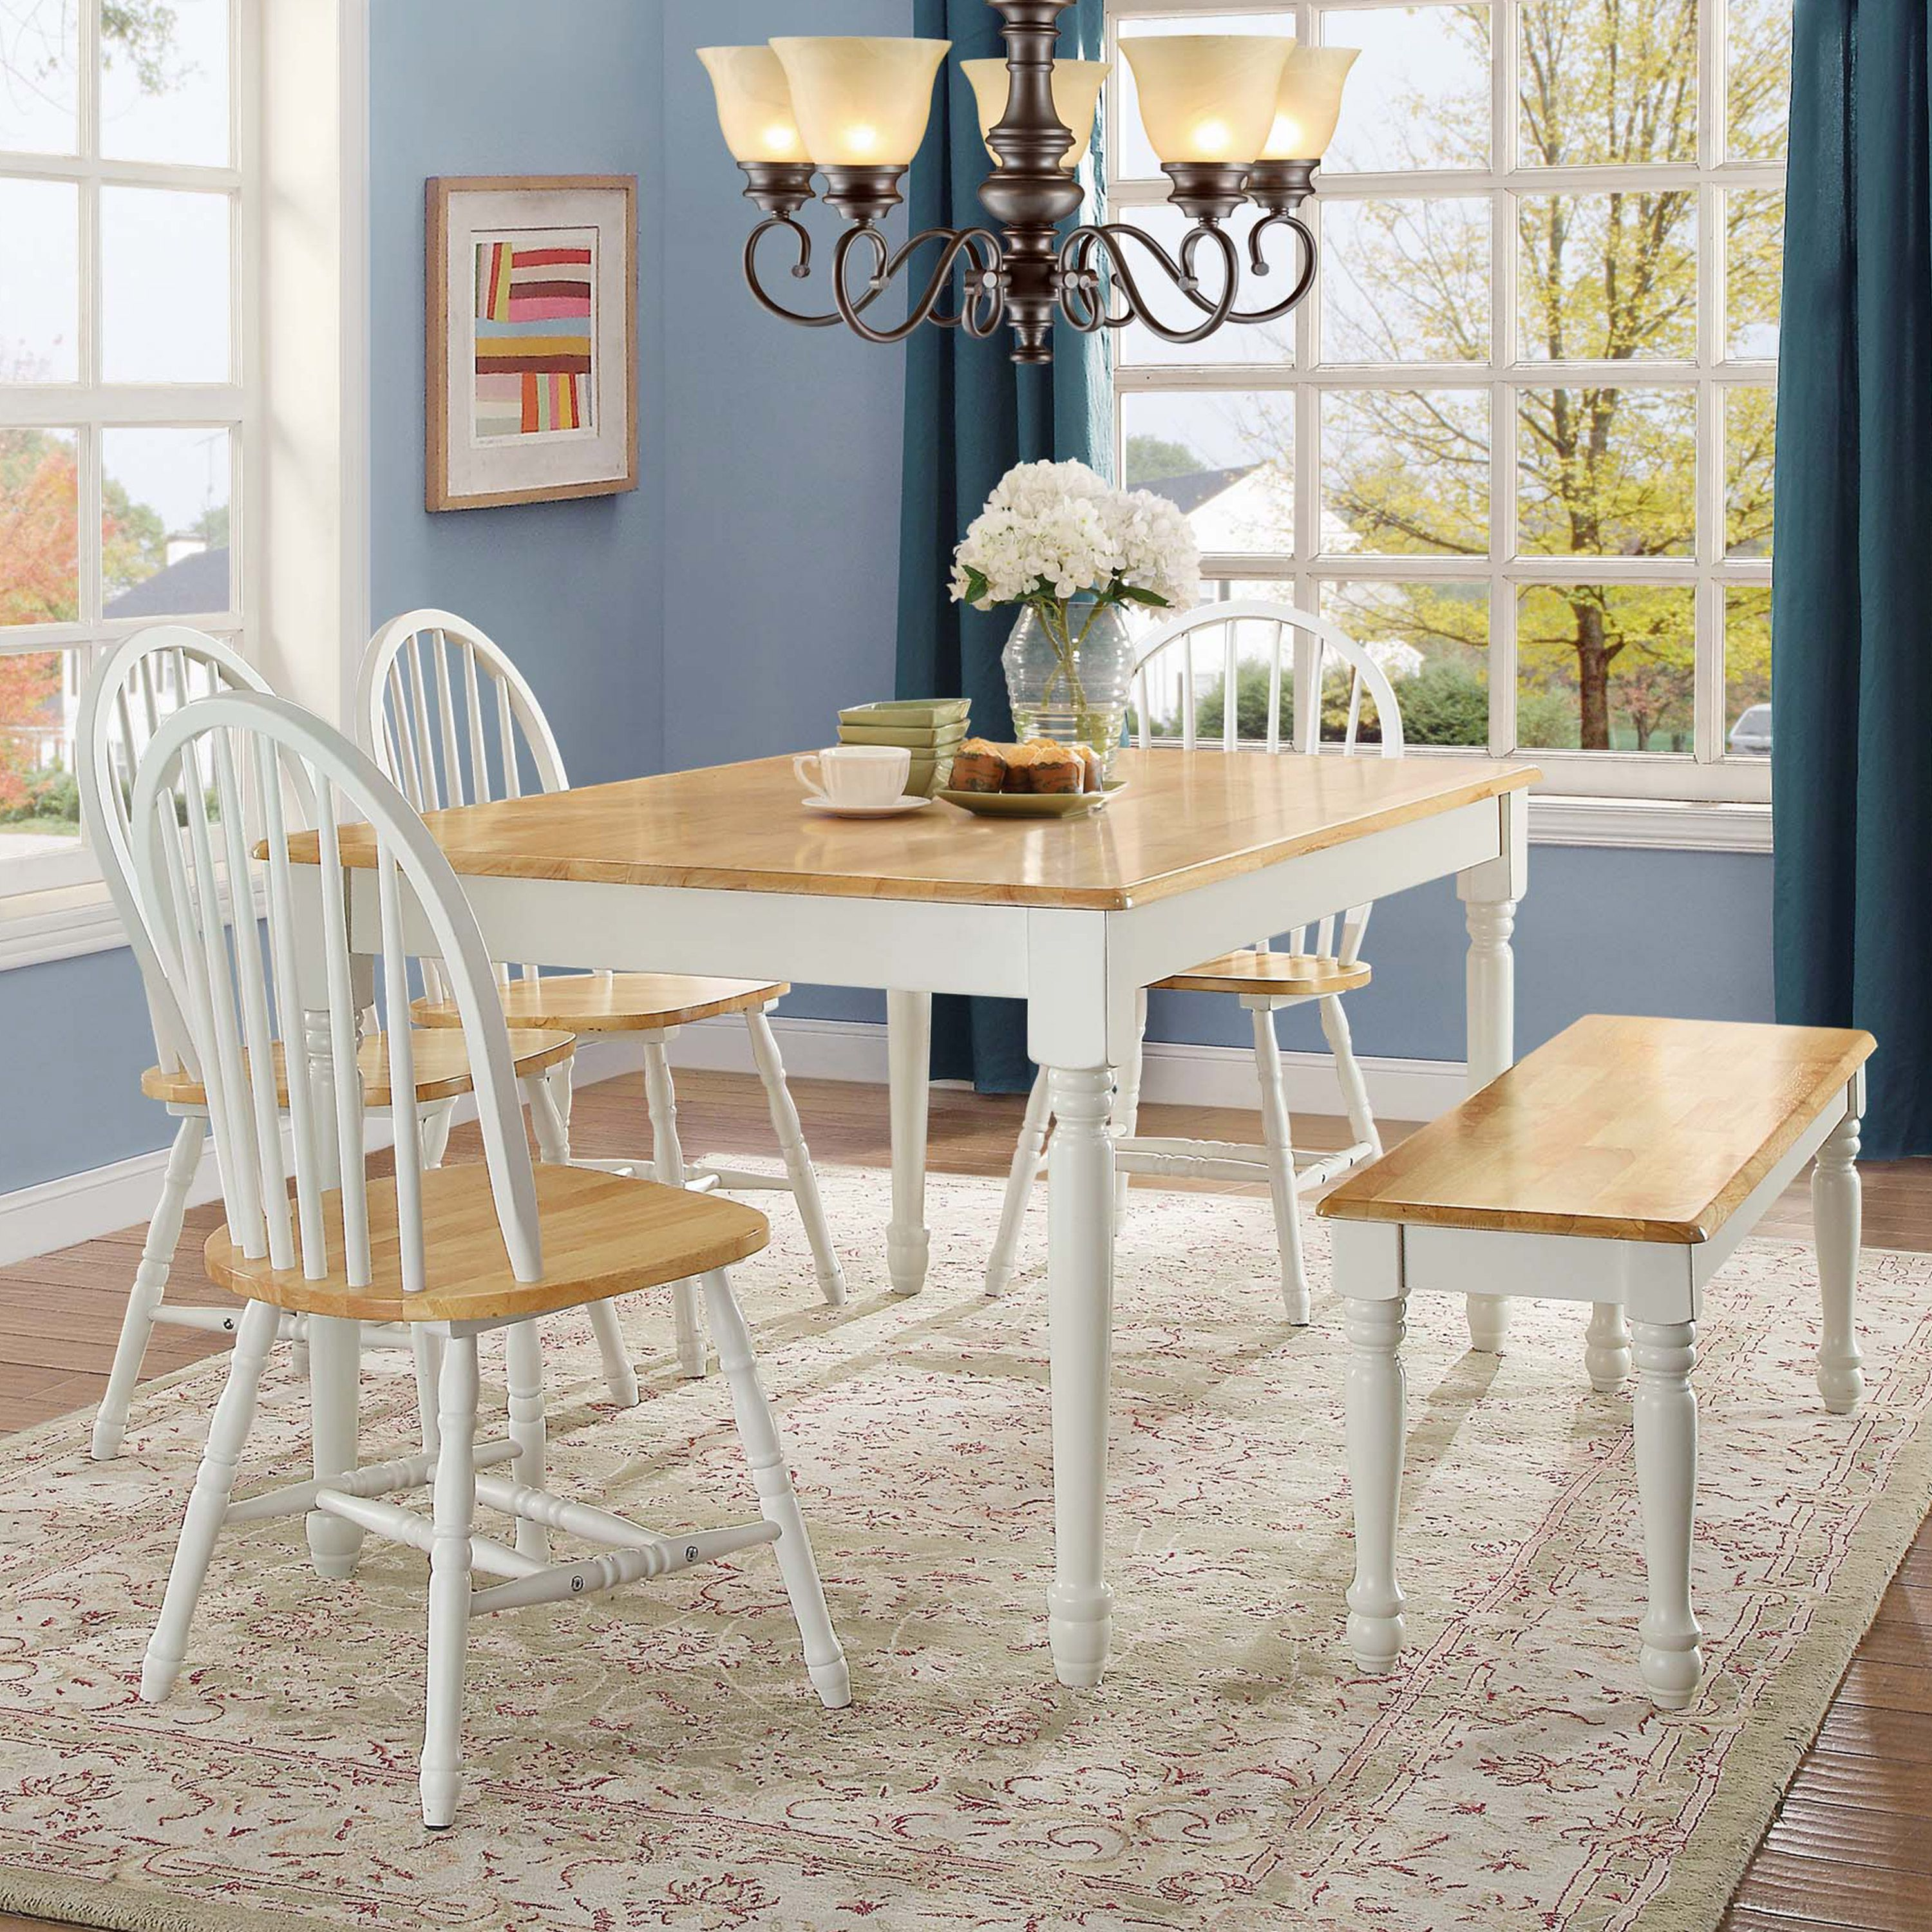 Better Homes And Gardens Autumn Lane Farmhouse Dining Table White And Natural Walmart Com Wood Dining Bench Farmhouse Dining Table Farmhouse Dining